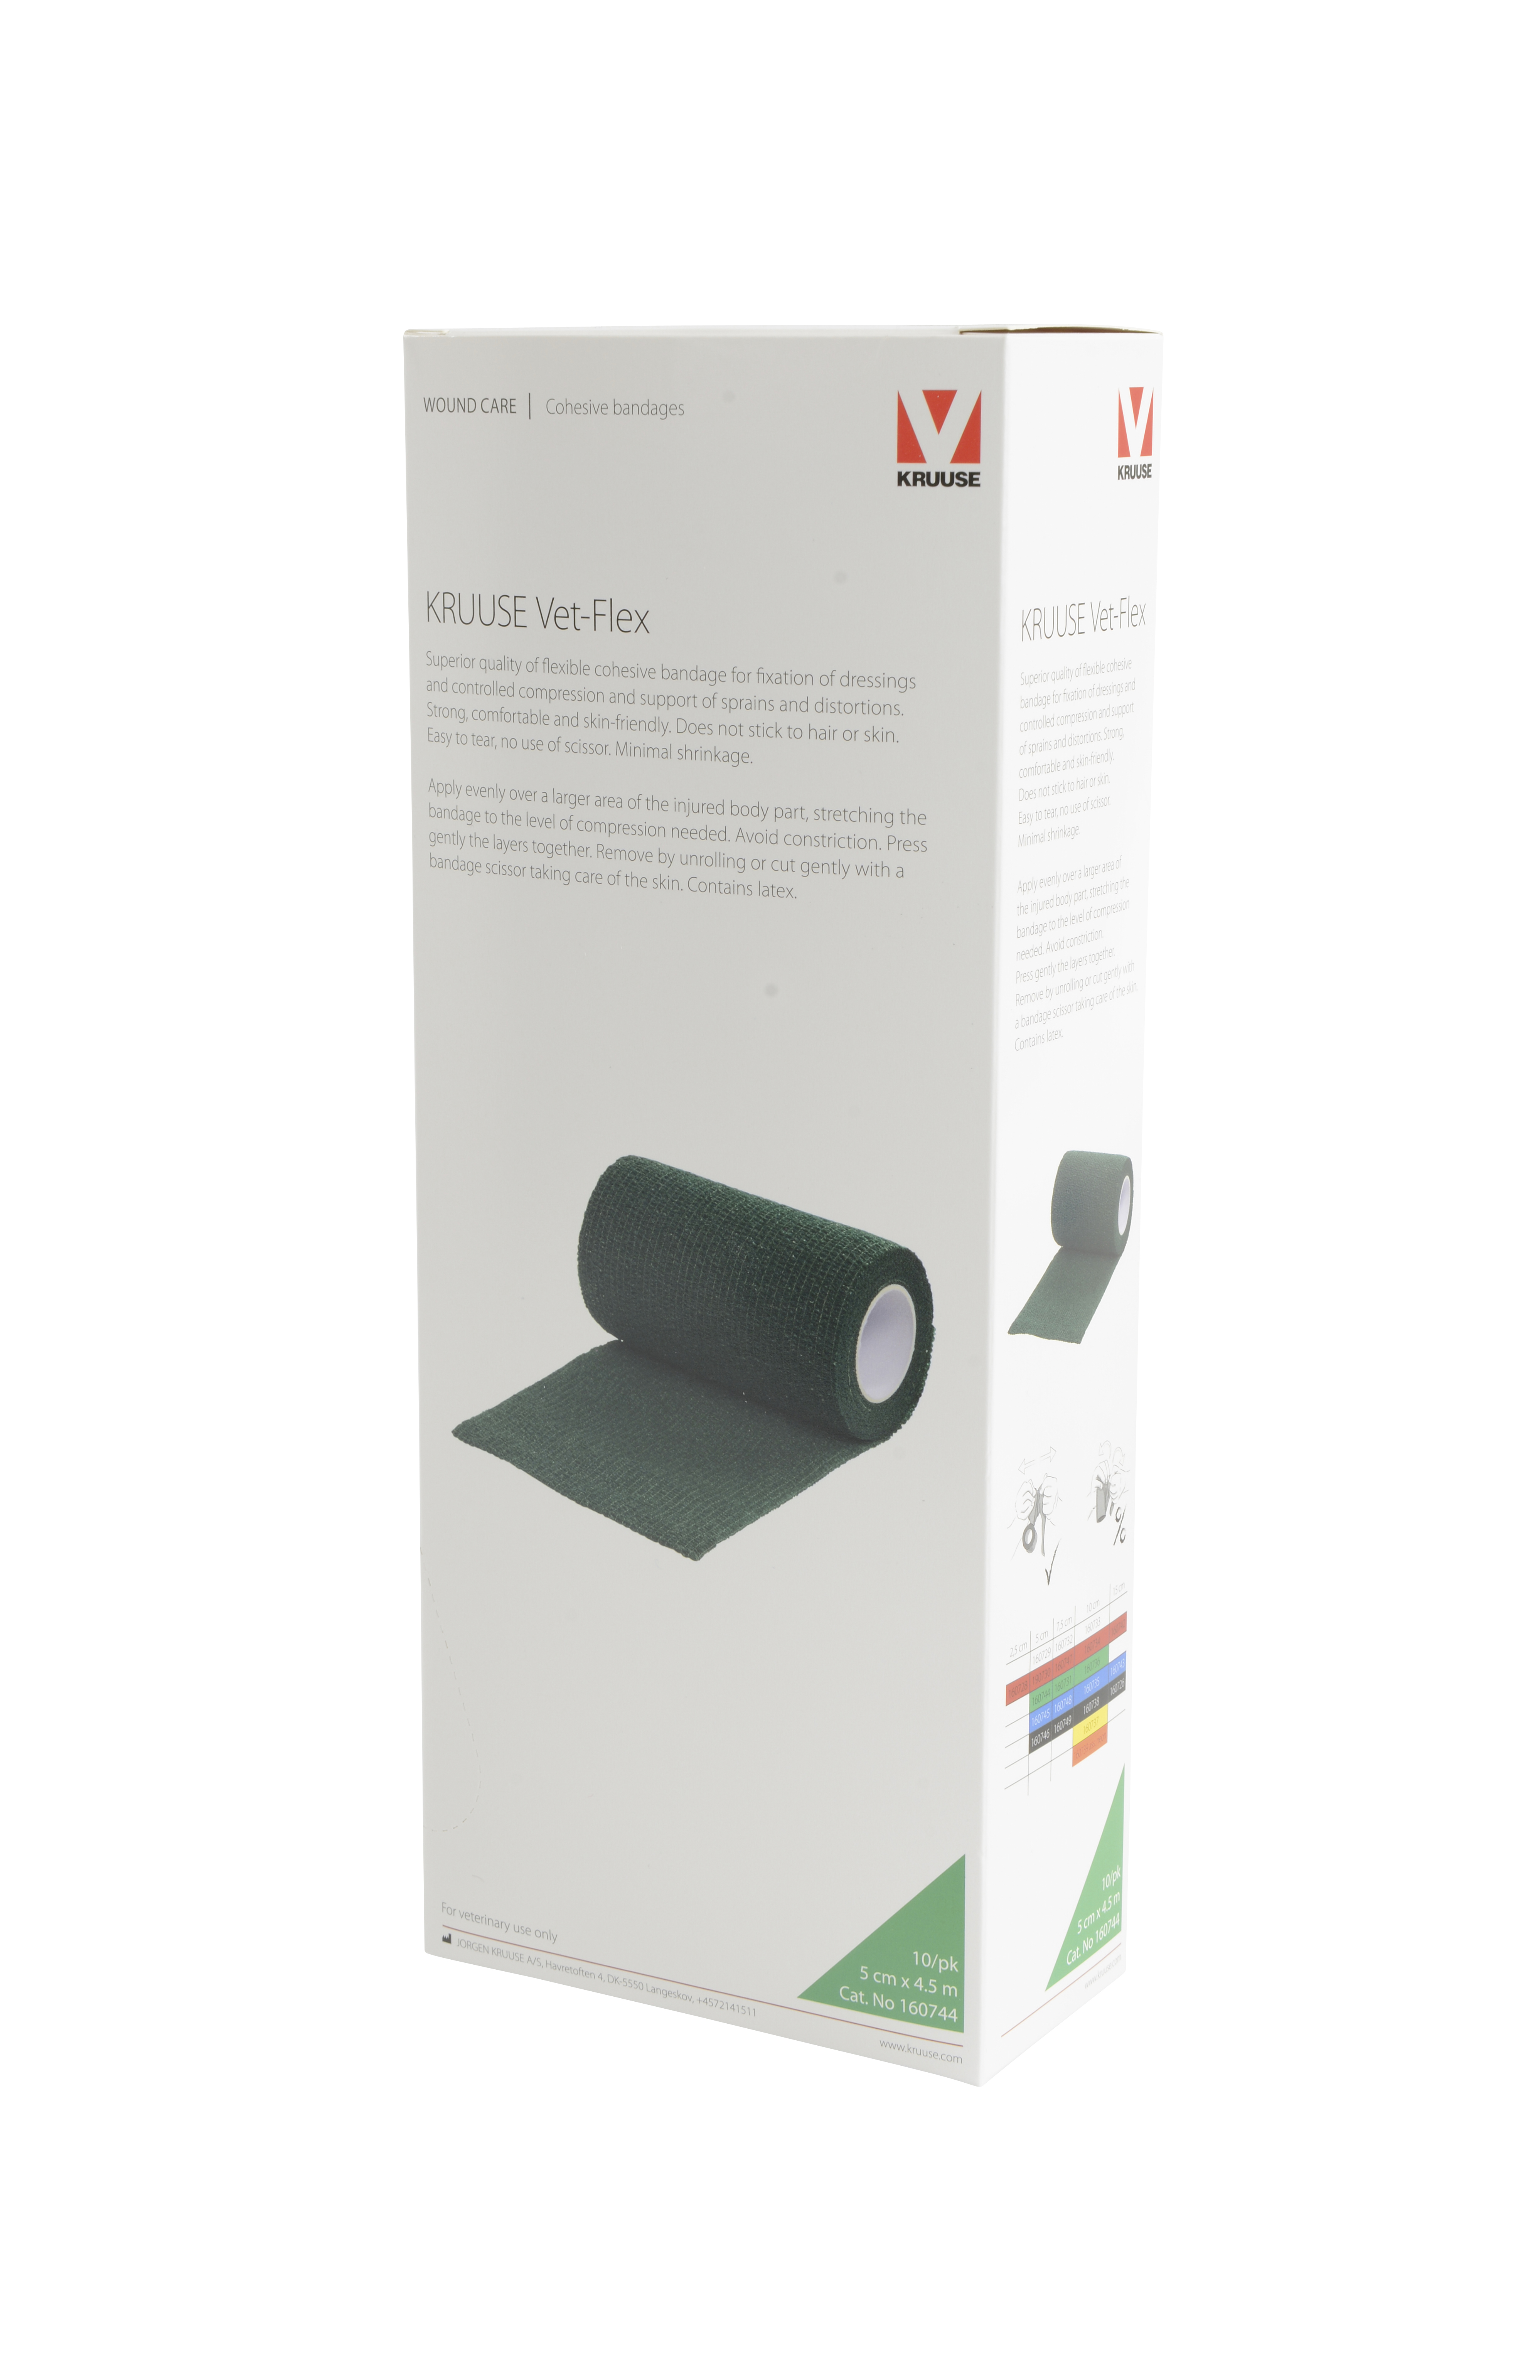 KRUUSE Vet-Flex 5 cm x 4.5 m, green, 10/pk